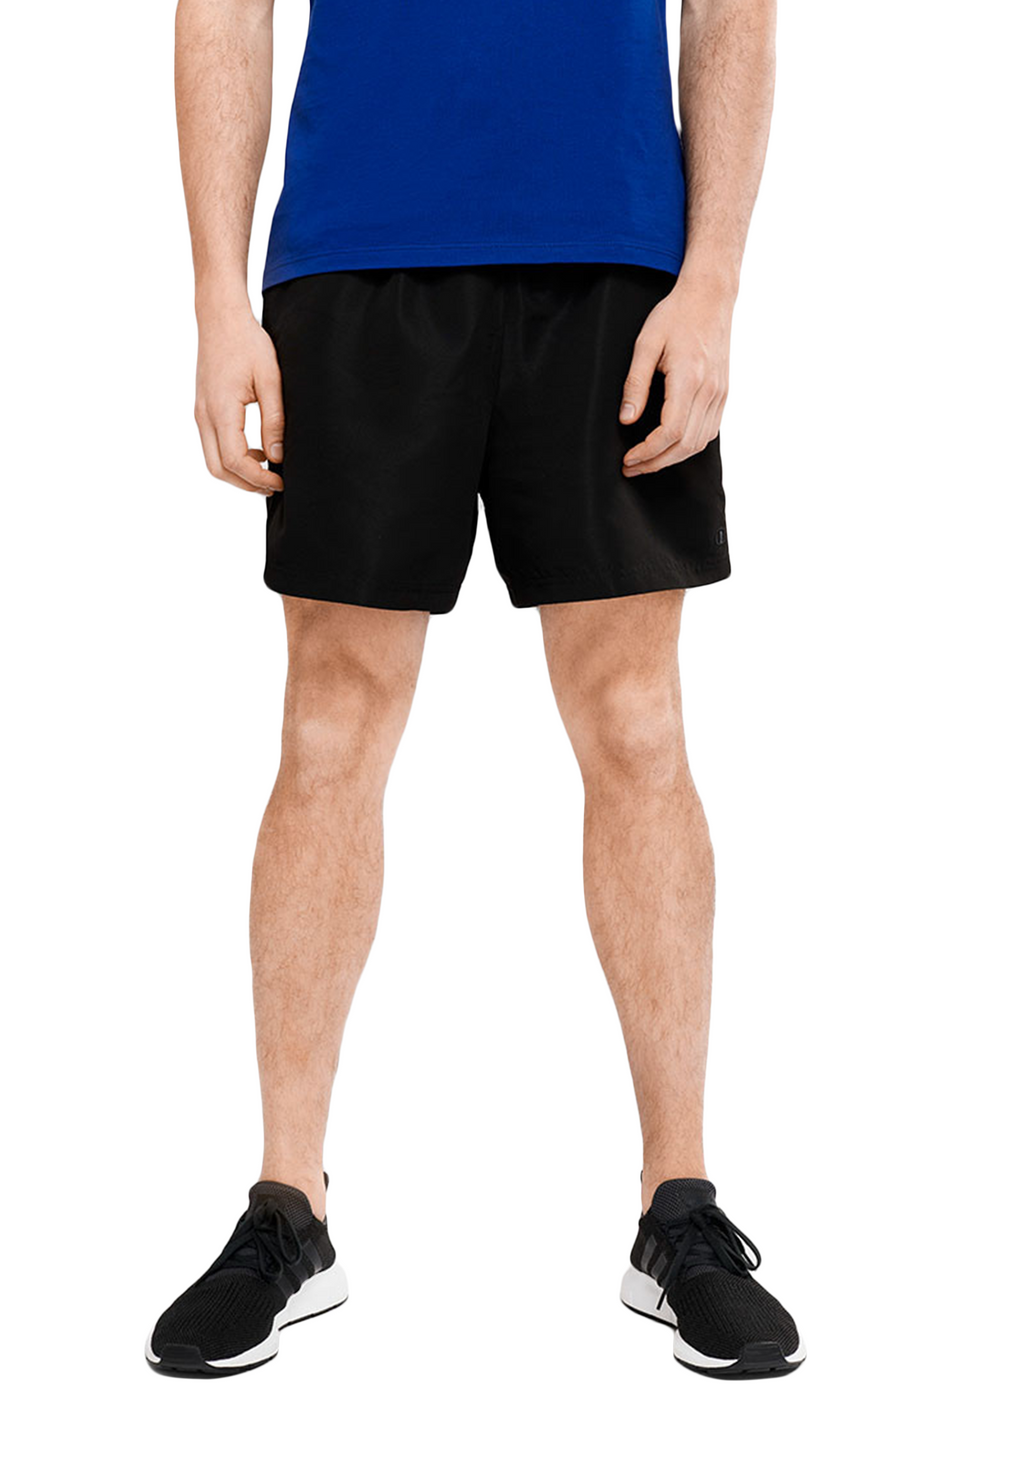 CHAMPION MENS INFINITY MICROFIBRE SHORTS <br> A1658H